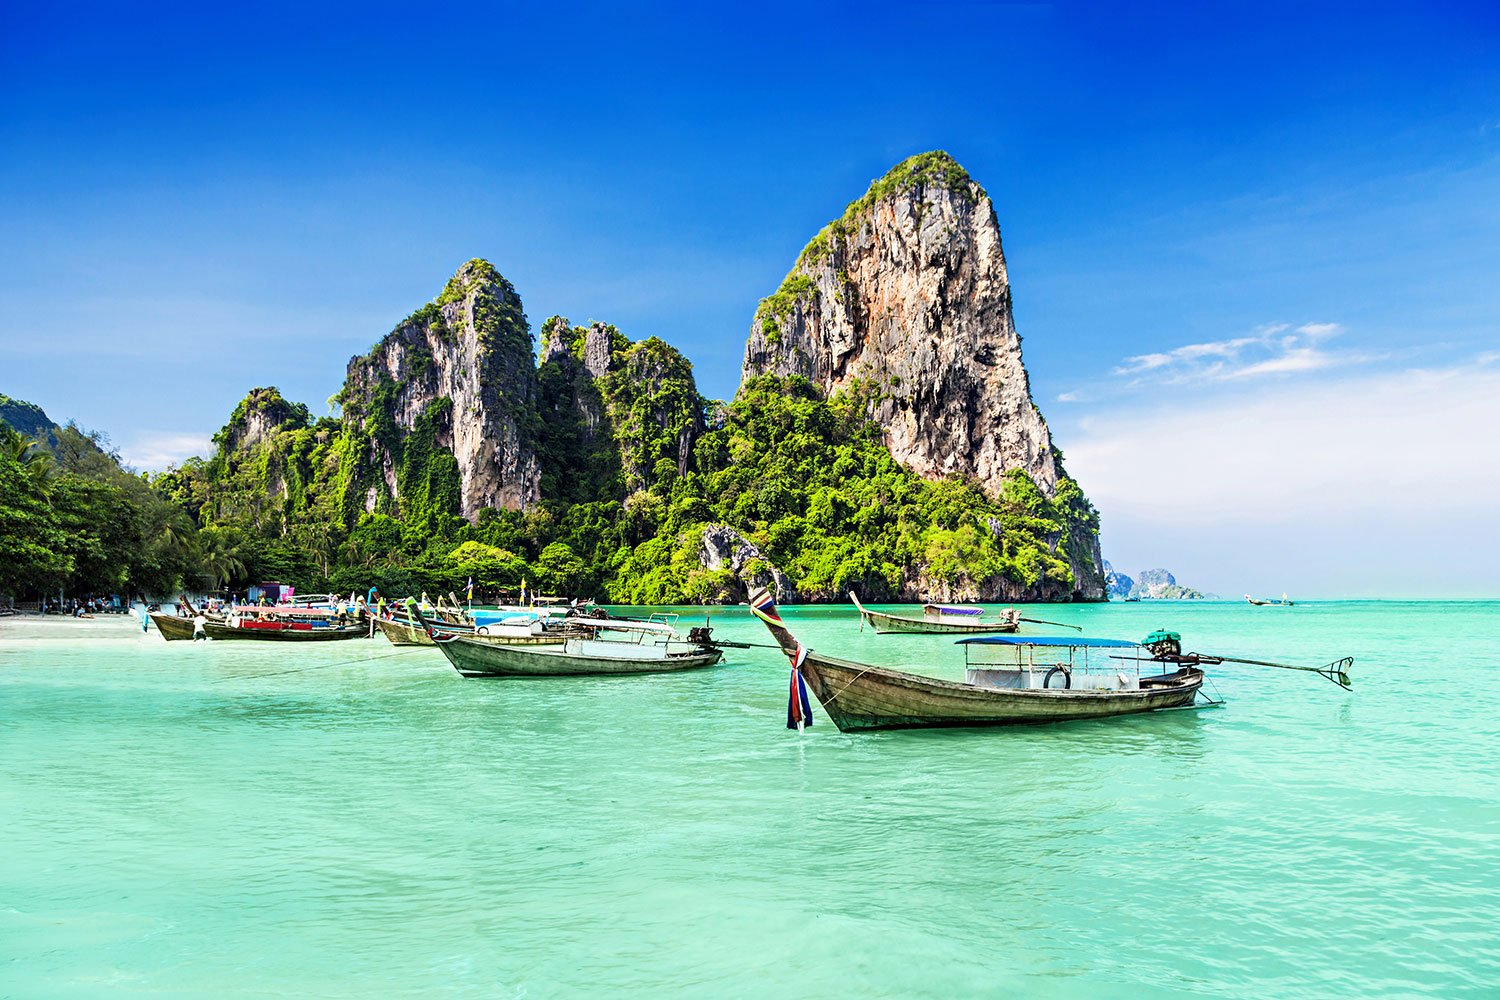 Small boats float in blue-green water next to large rock formations in Thailand